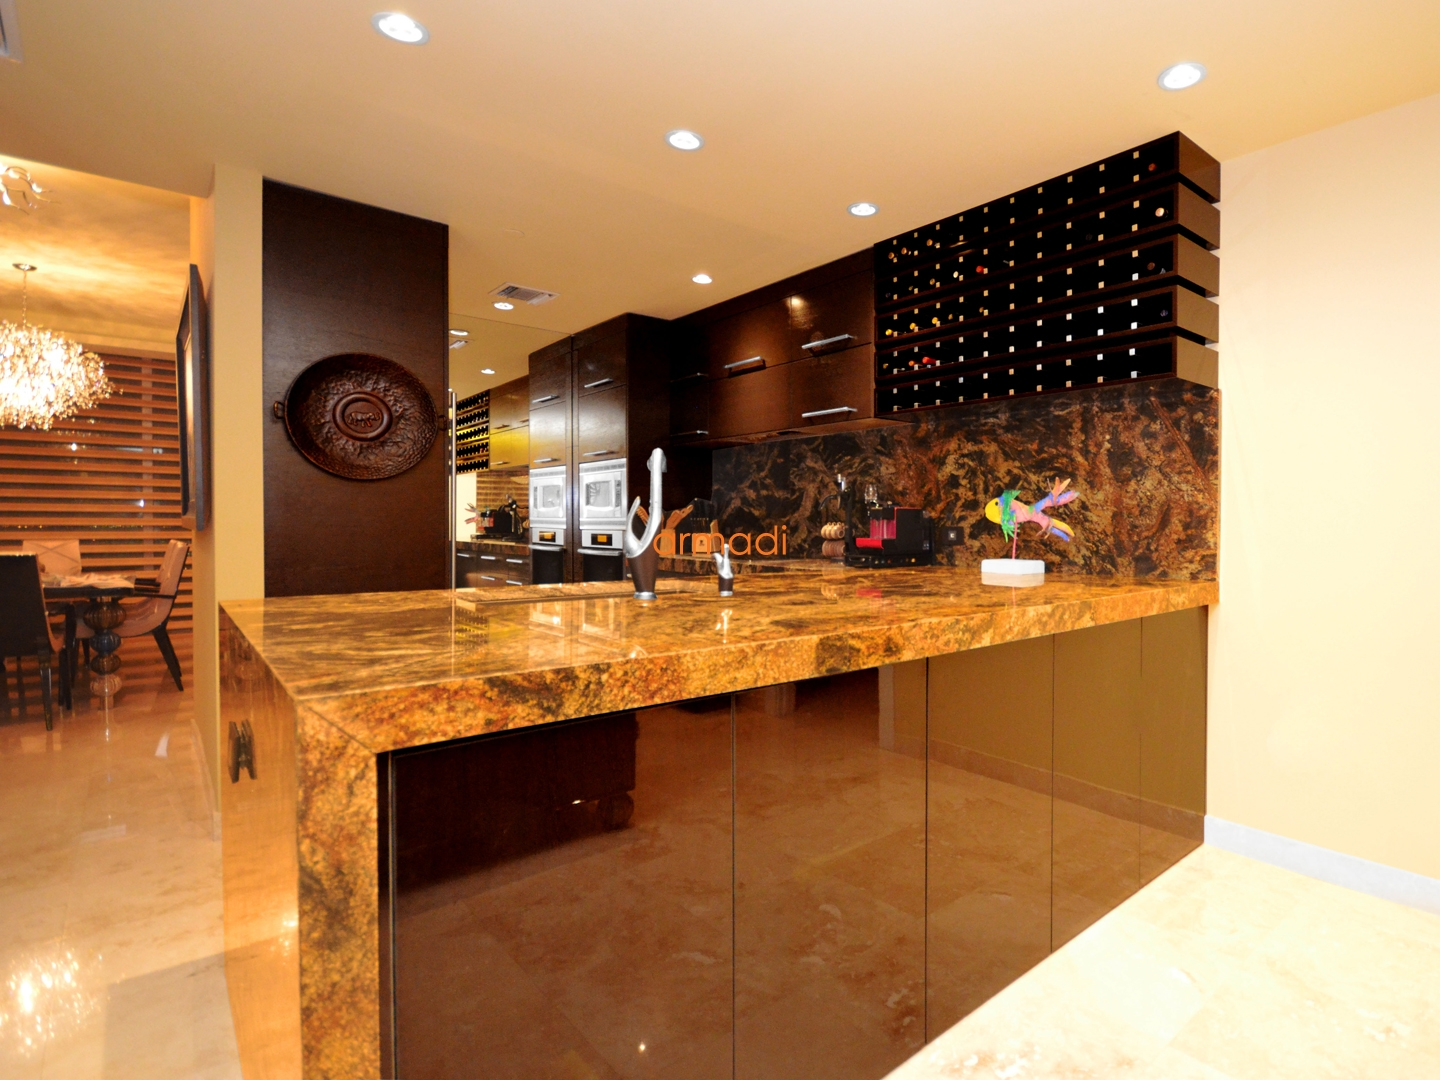 armadi custom furnitures custom design kitchens in miami